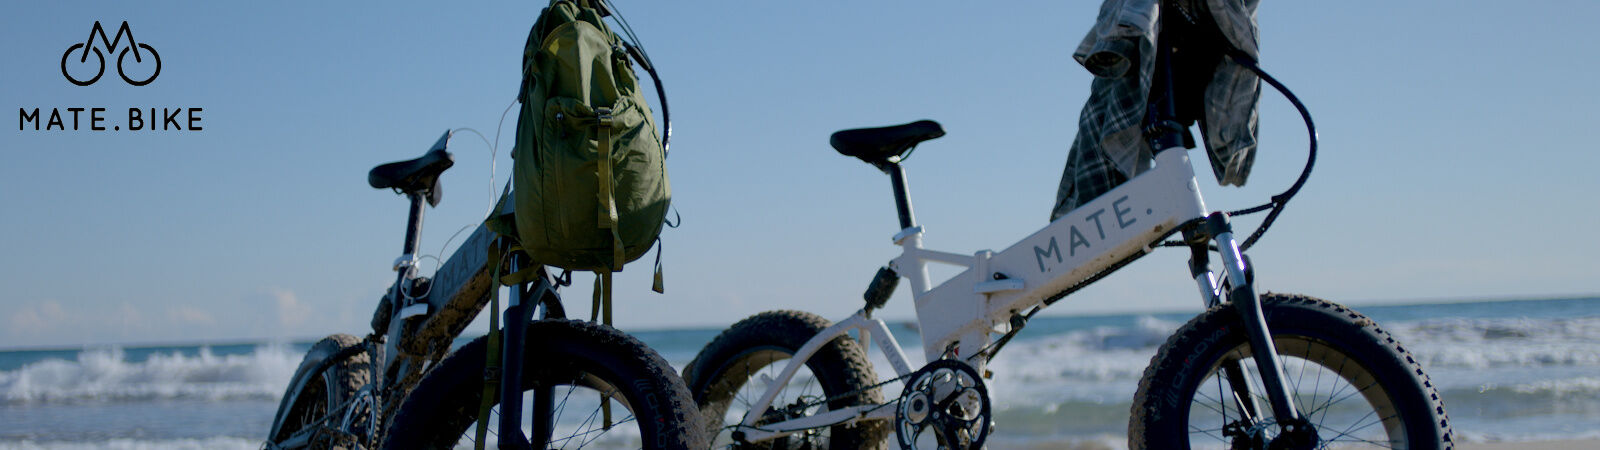 MATE eBikes and Electric Bicycles available at Sportique.com